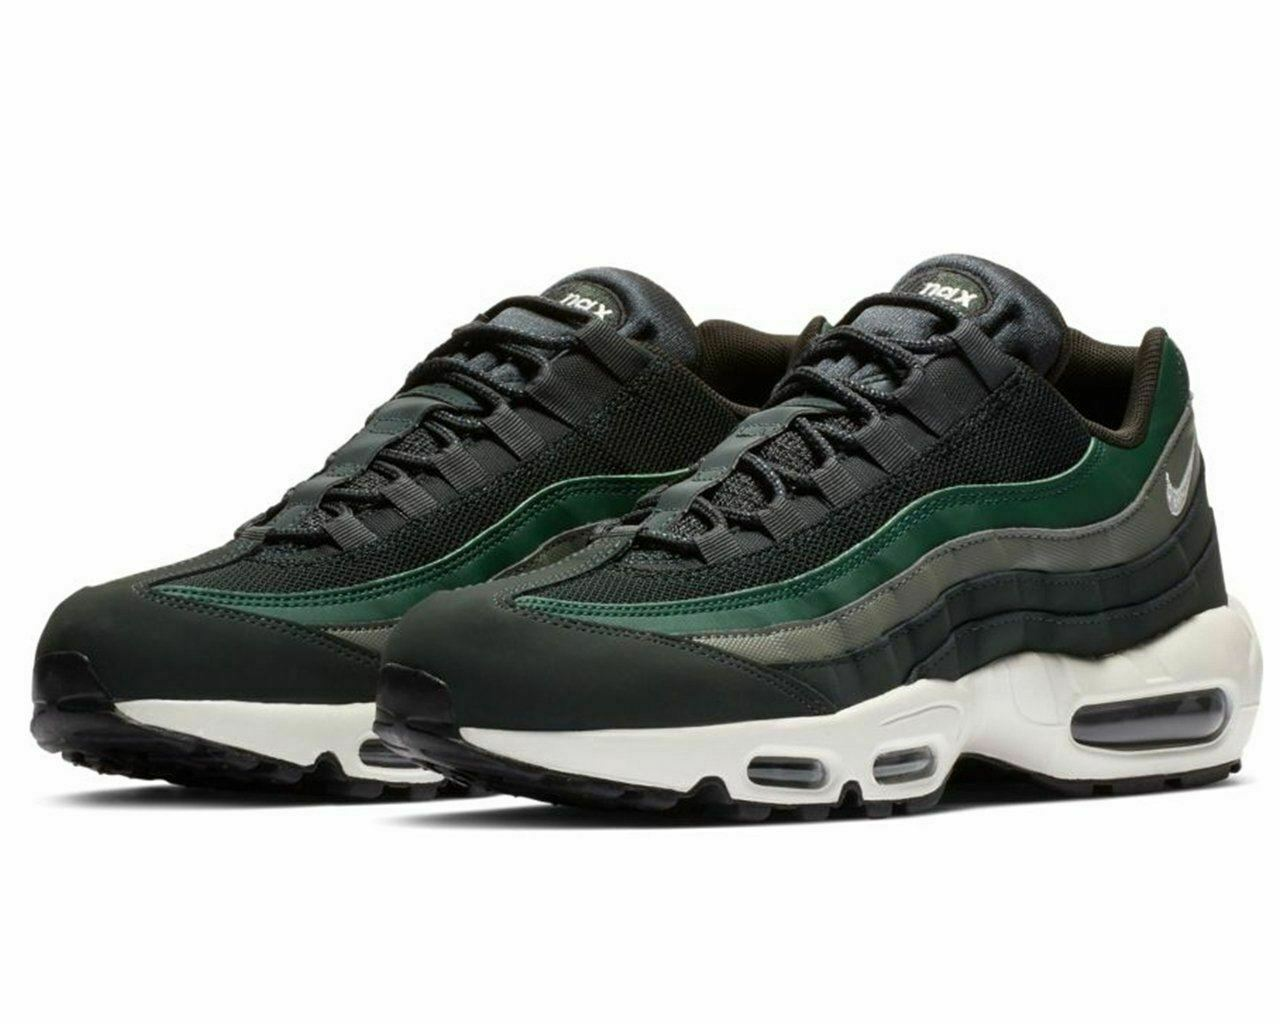 Nike Air Max 95 Essential 749766 304 Trainers Outdoor Green